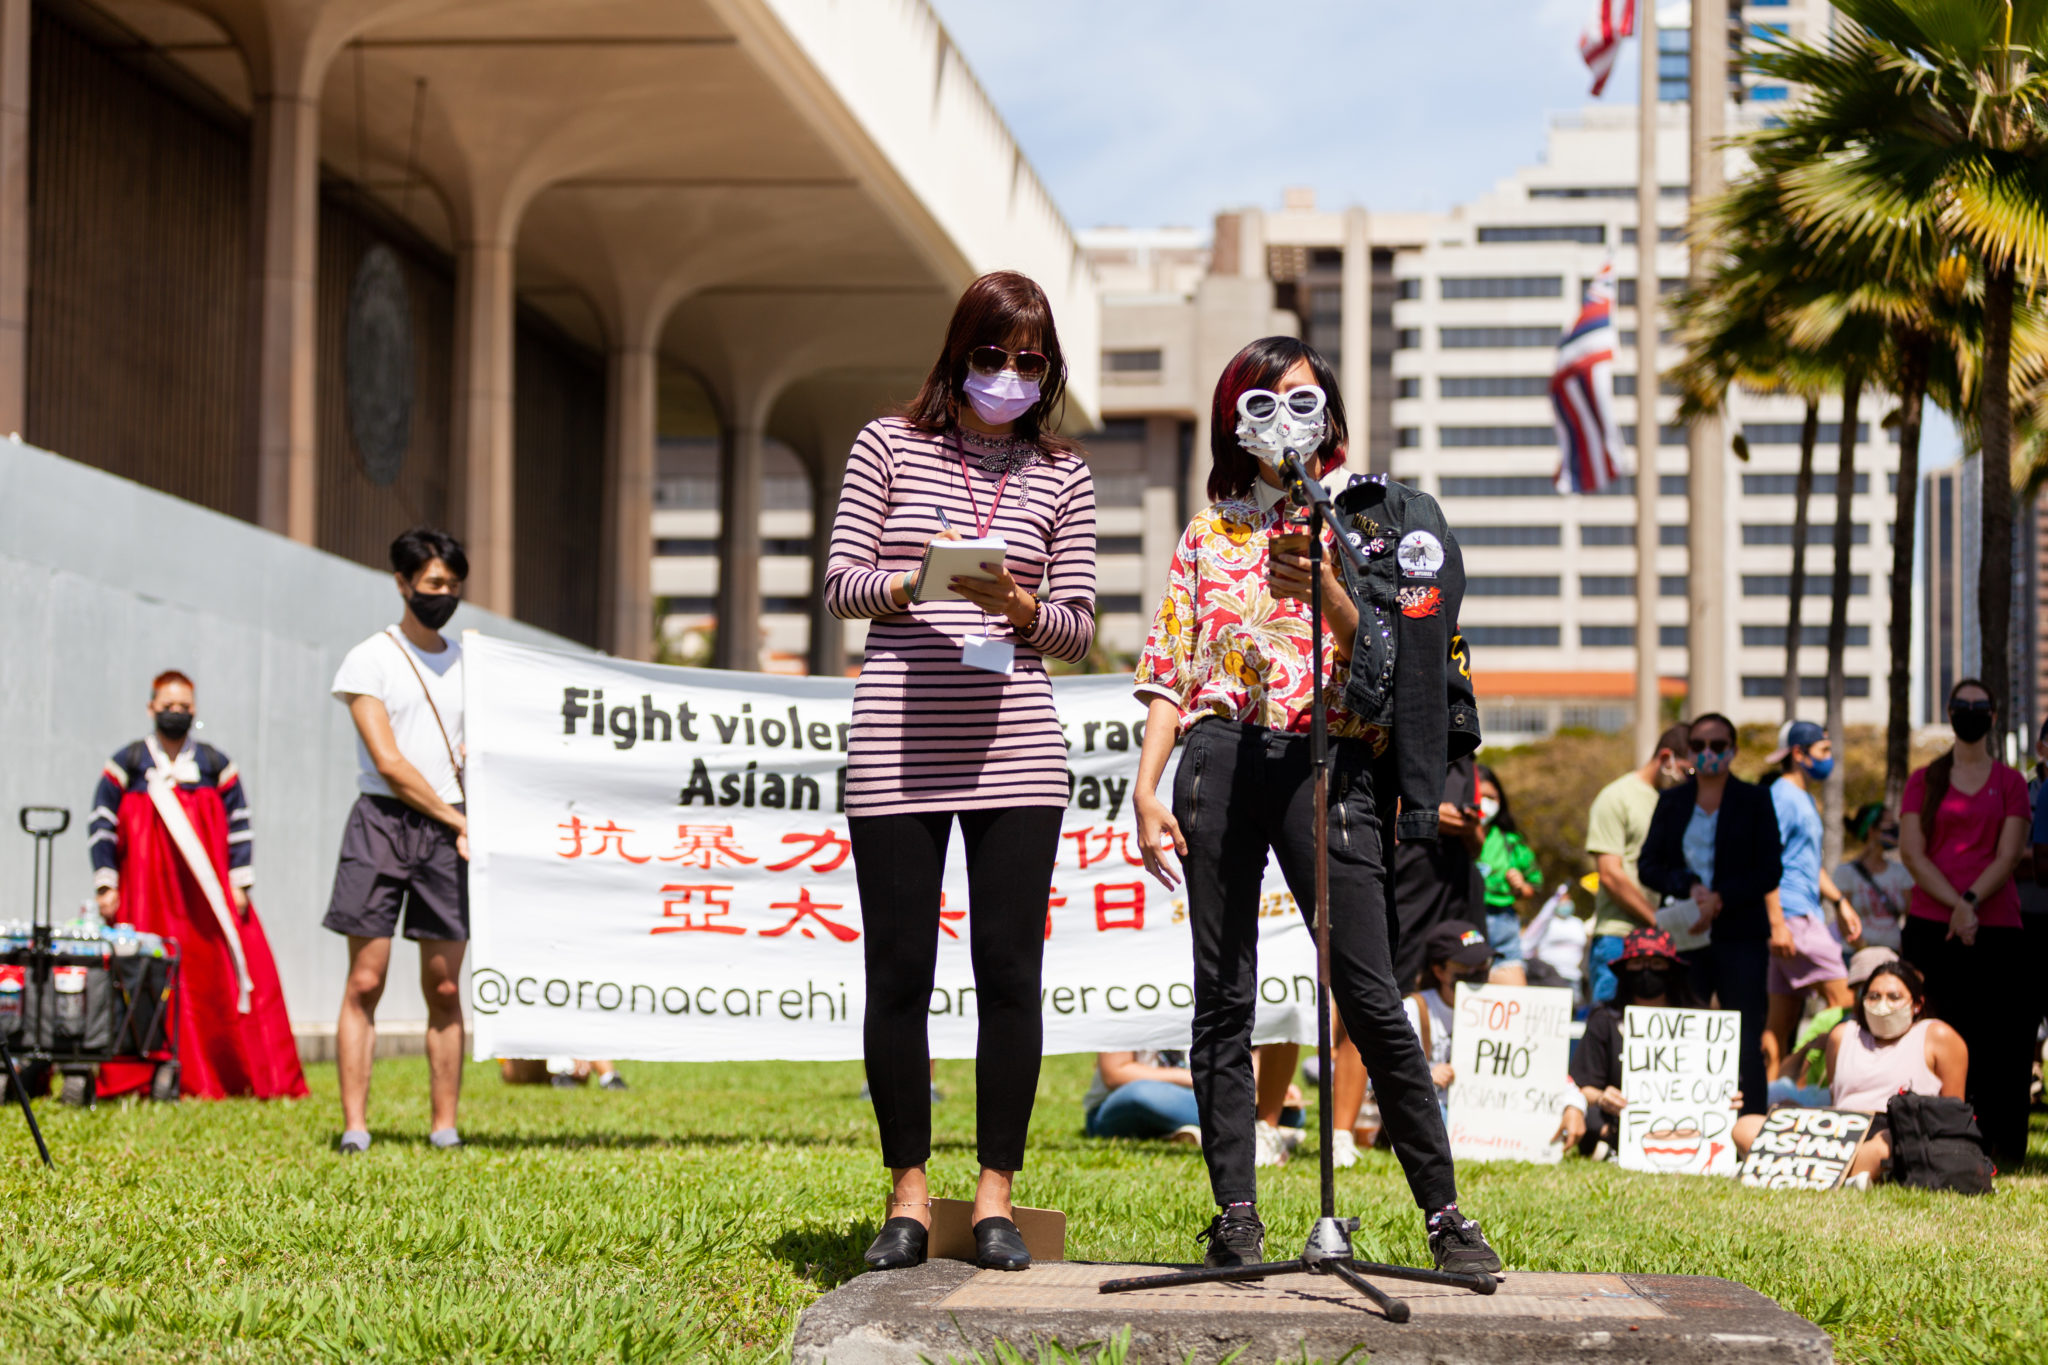 Two demonstrators at the Stop Asian Hate rally in Honolulu